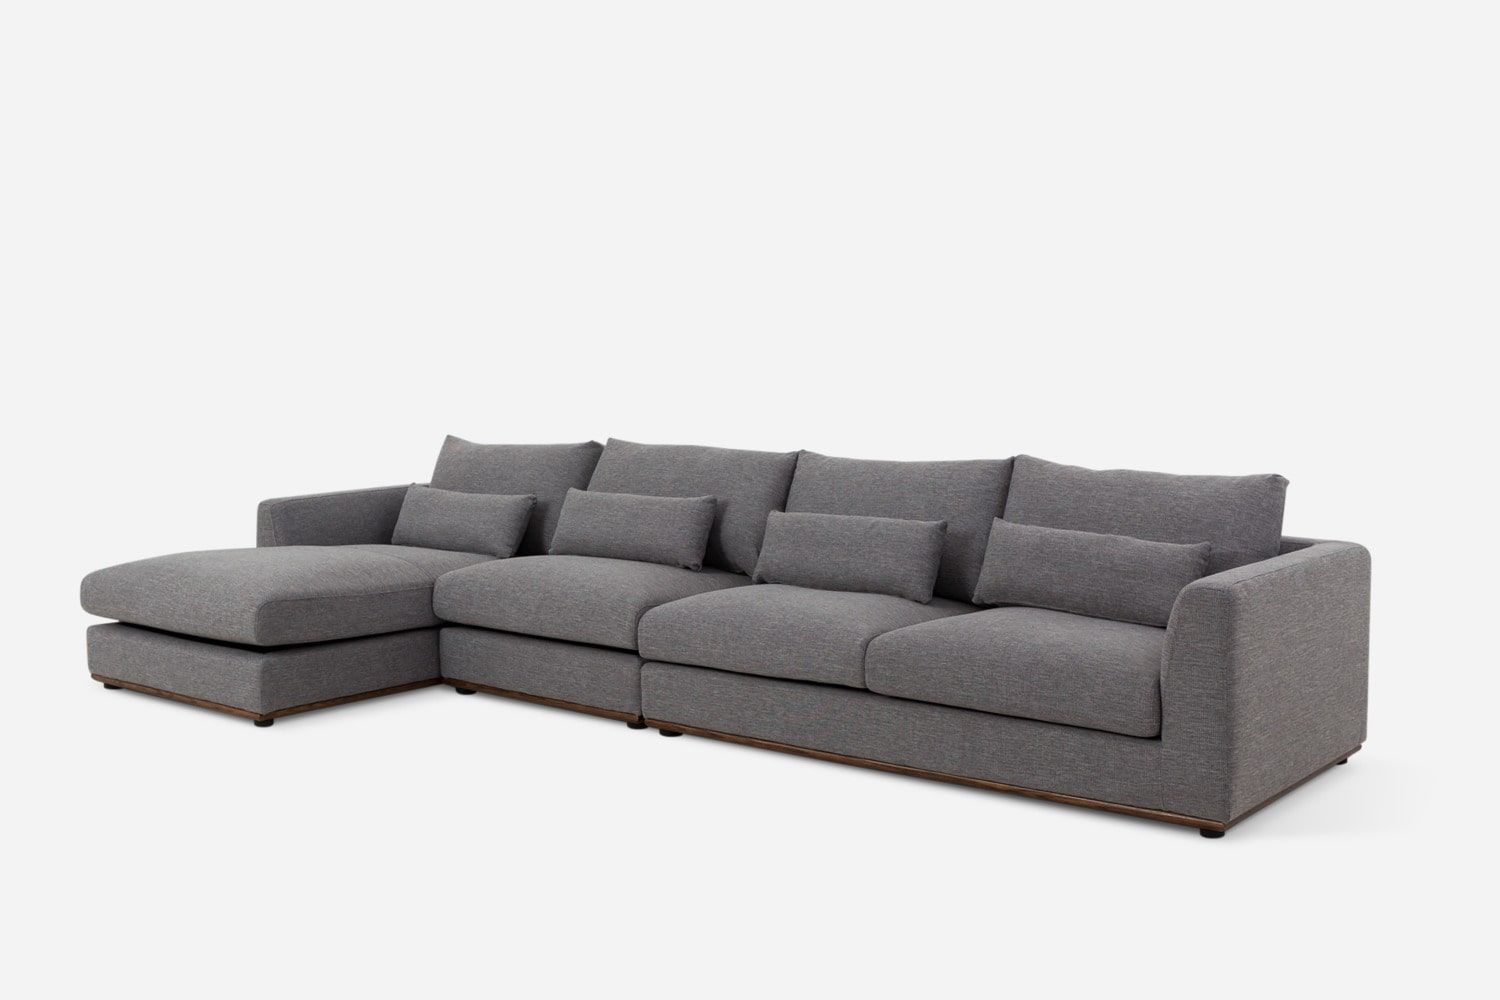 Alfie Extended Chaise Sectional Sofa Checked Gray Right Facing Castlery Sectional Sofa Castlery Sectional